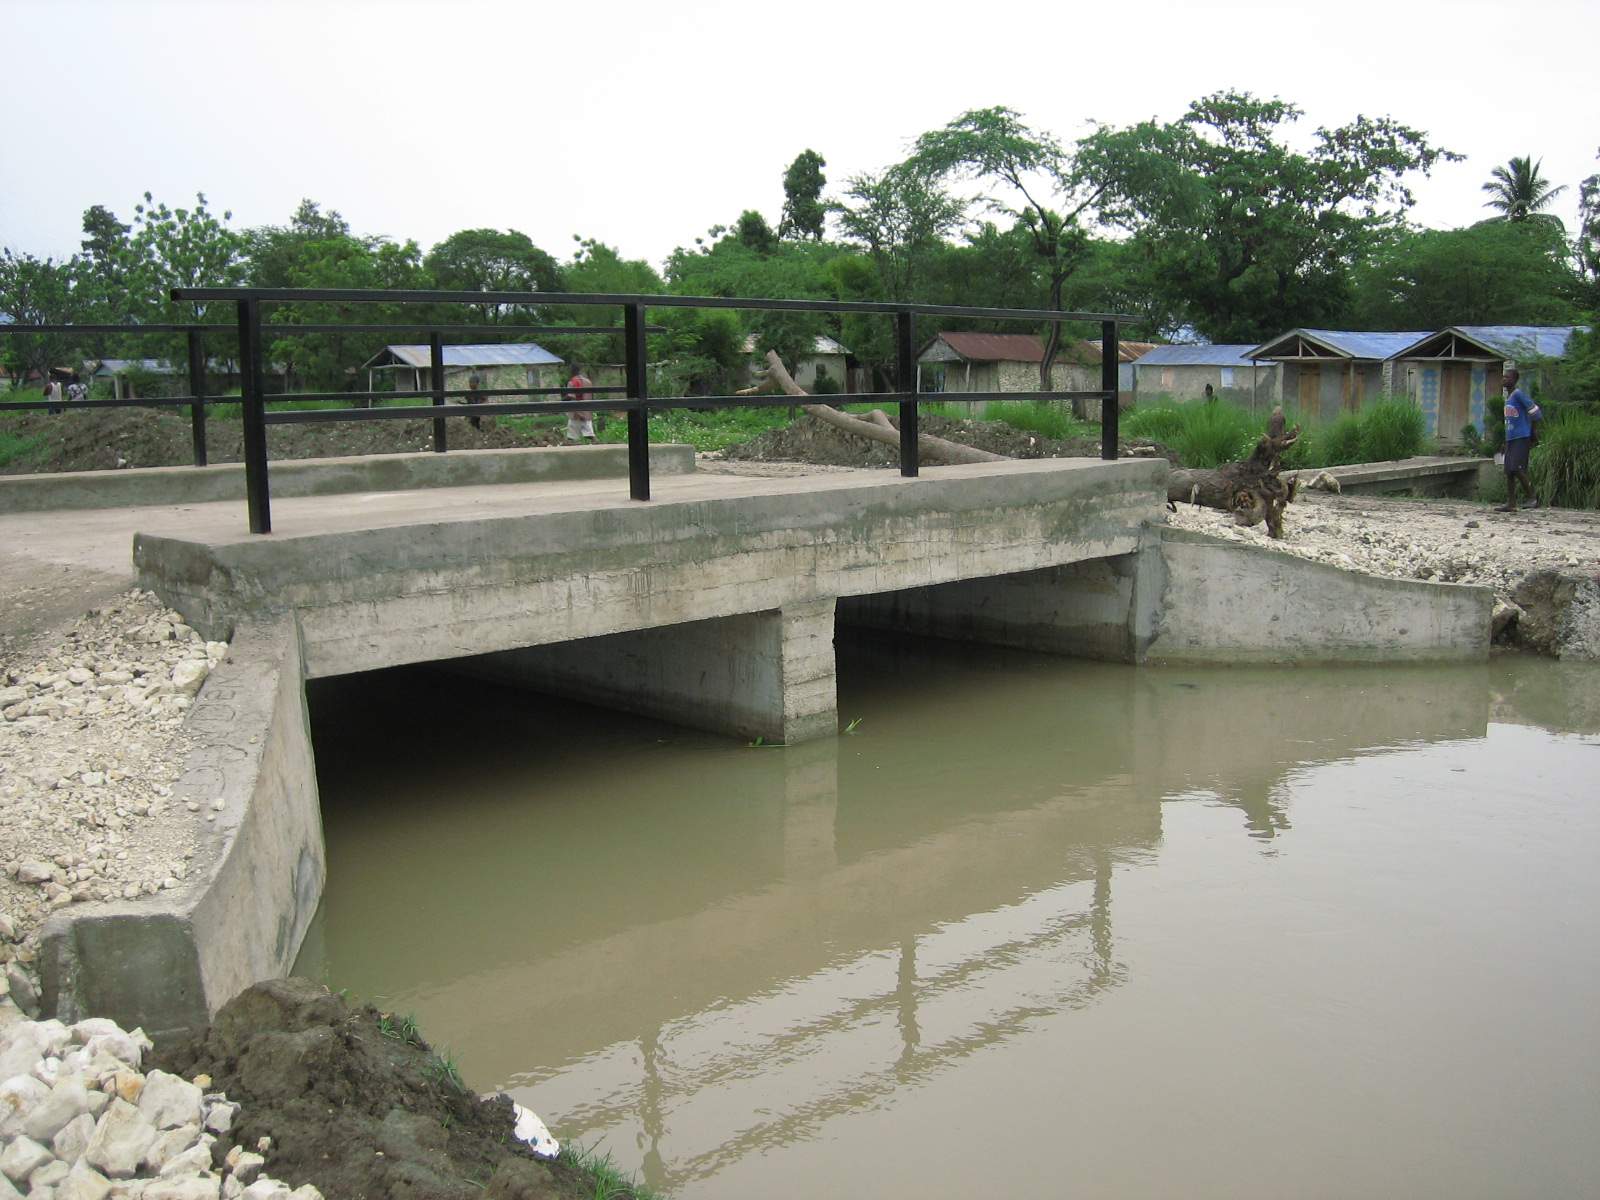 INFRASTRUCTURE -  In 2009, HTH built a concrete, vehicular bridge, greatly increasing the potential for the people to attend church, school, and the local well for their daily water supply. In 2012 HTH built latrines for the old Notre Dame Grade School and in 2013 a community center was completed, providing a place for meetings, seminars, social gatherings and computer classes.